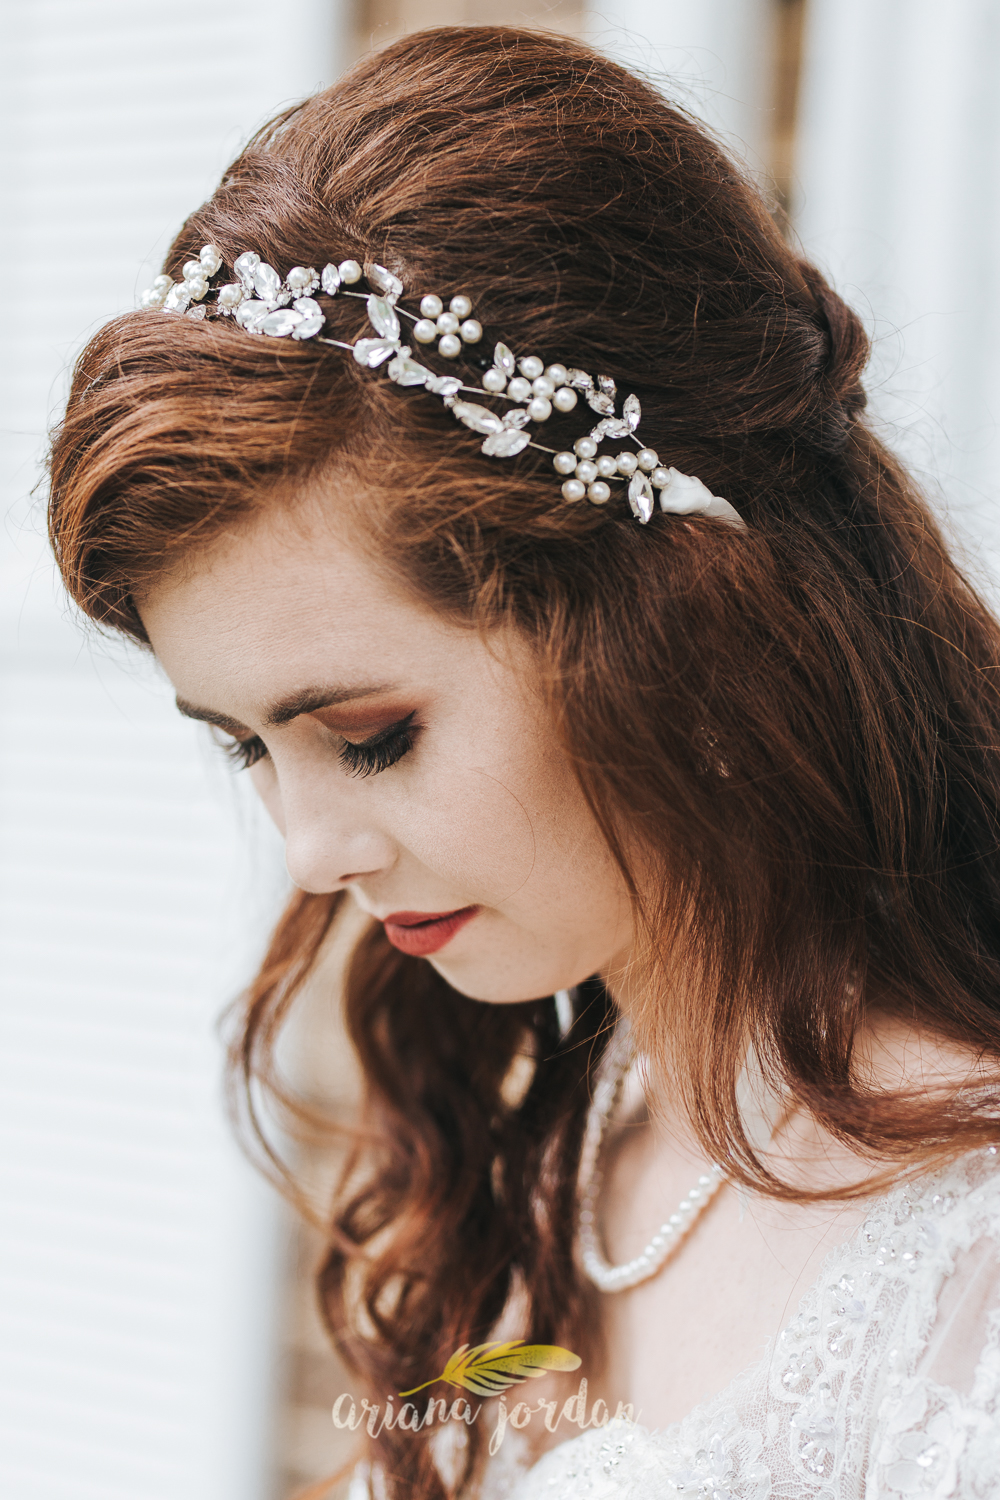 094 - Ariana Jordan - Kentucky Wedding Photographer - Landon & Tabitha_.jpg